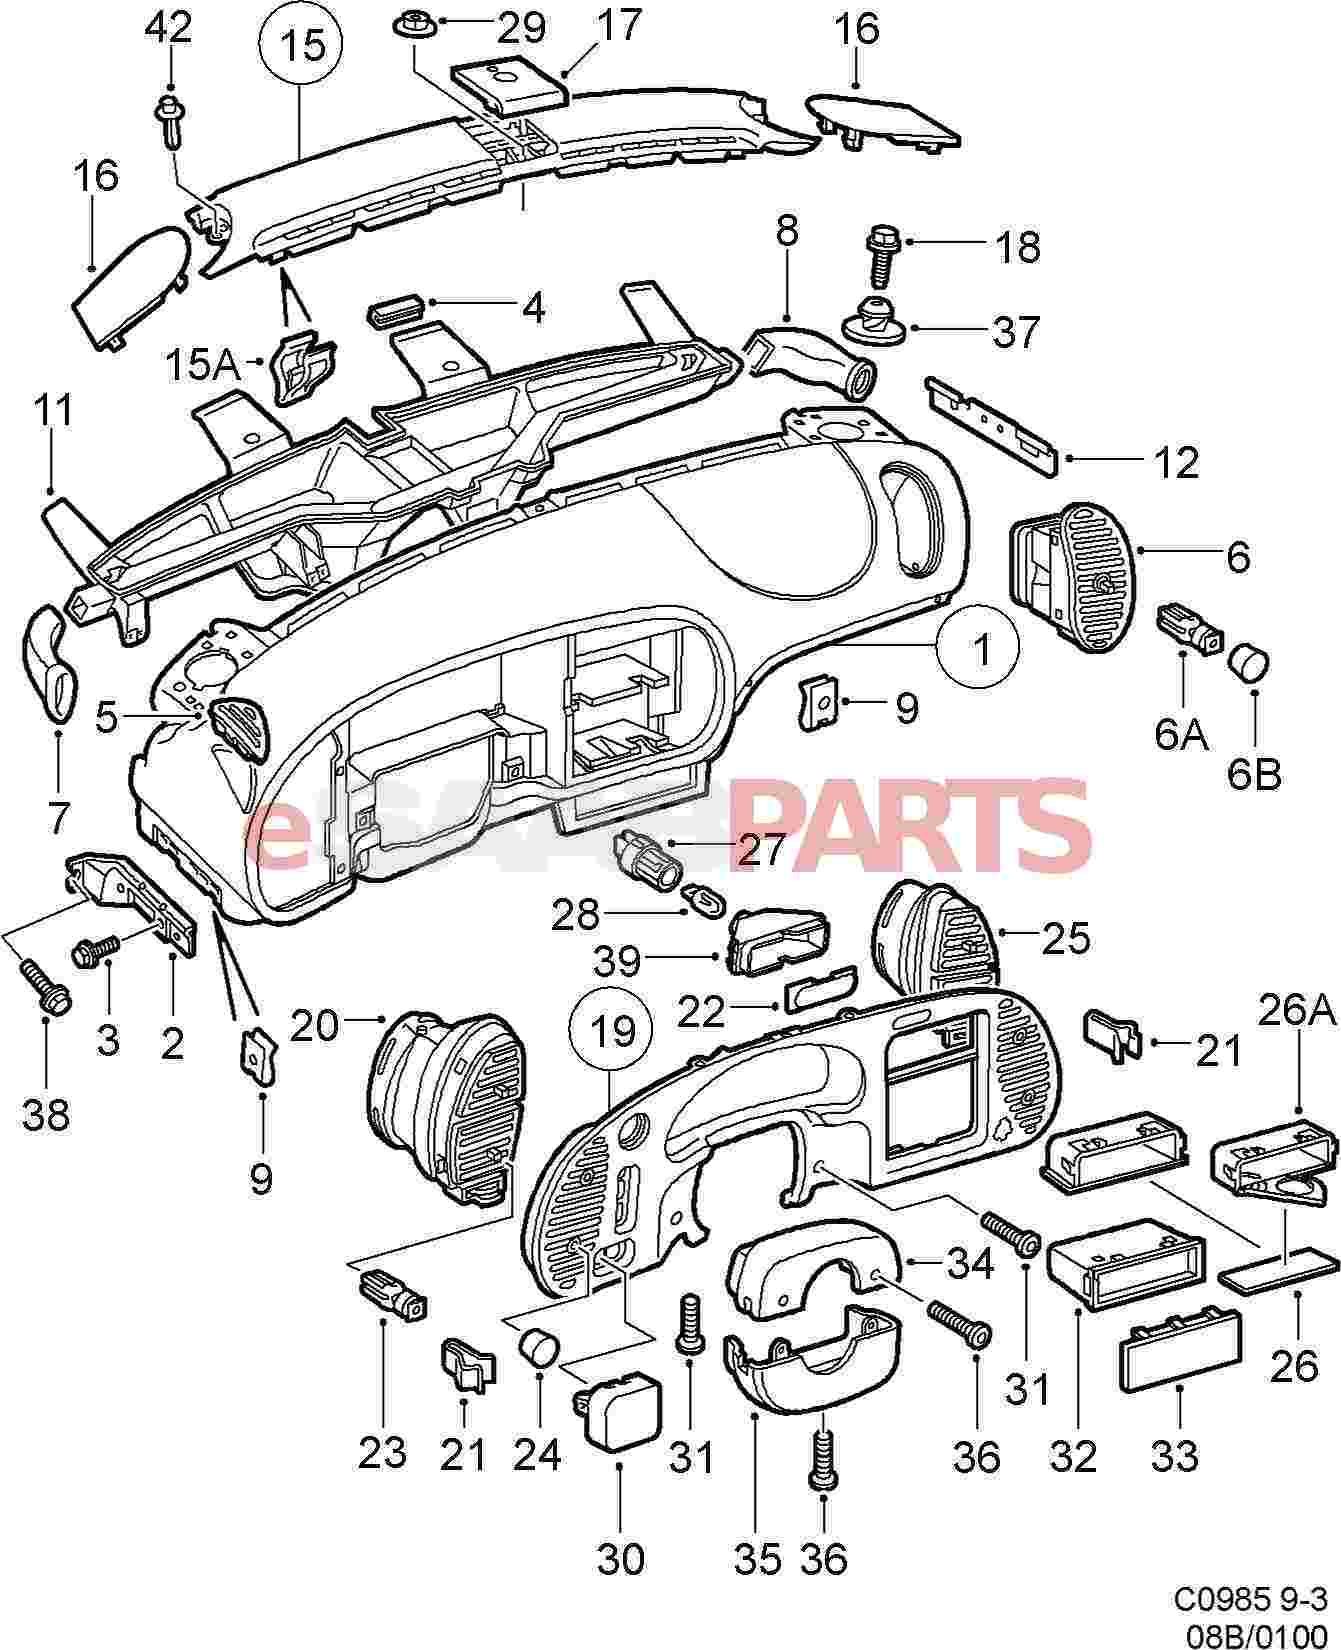 Diagram Daihatsu Terios Wiring Diagram Full Version